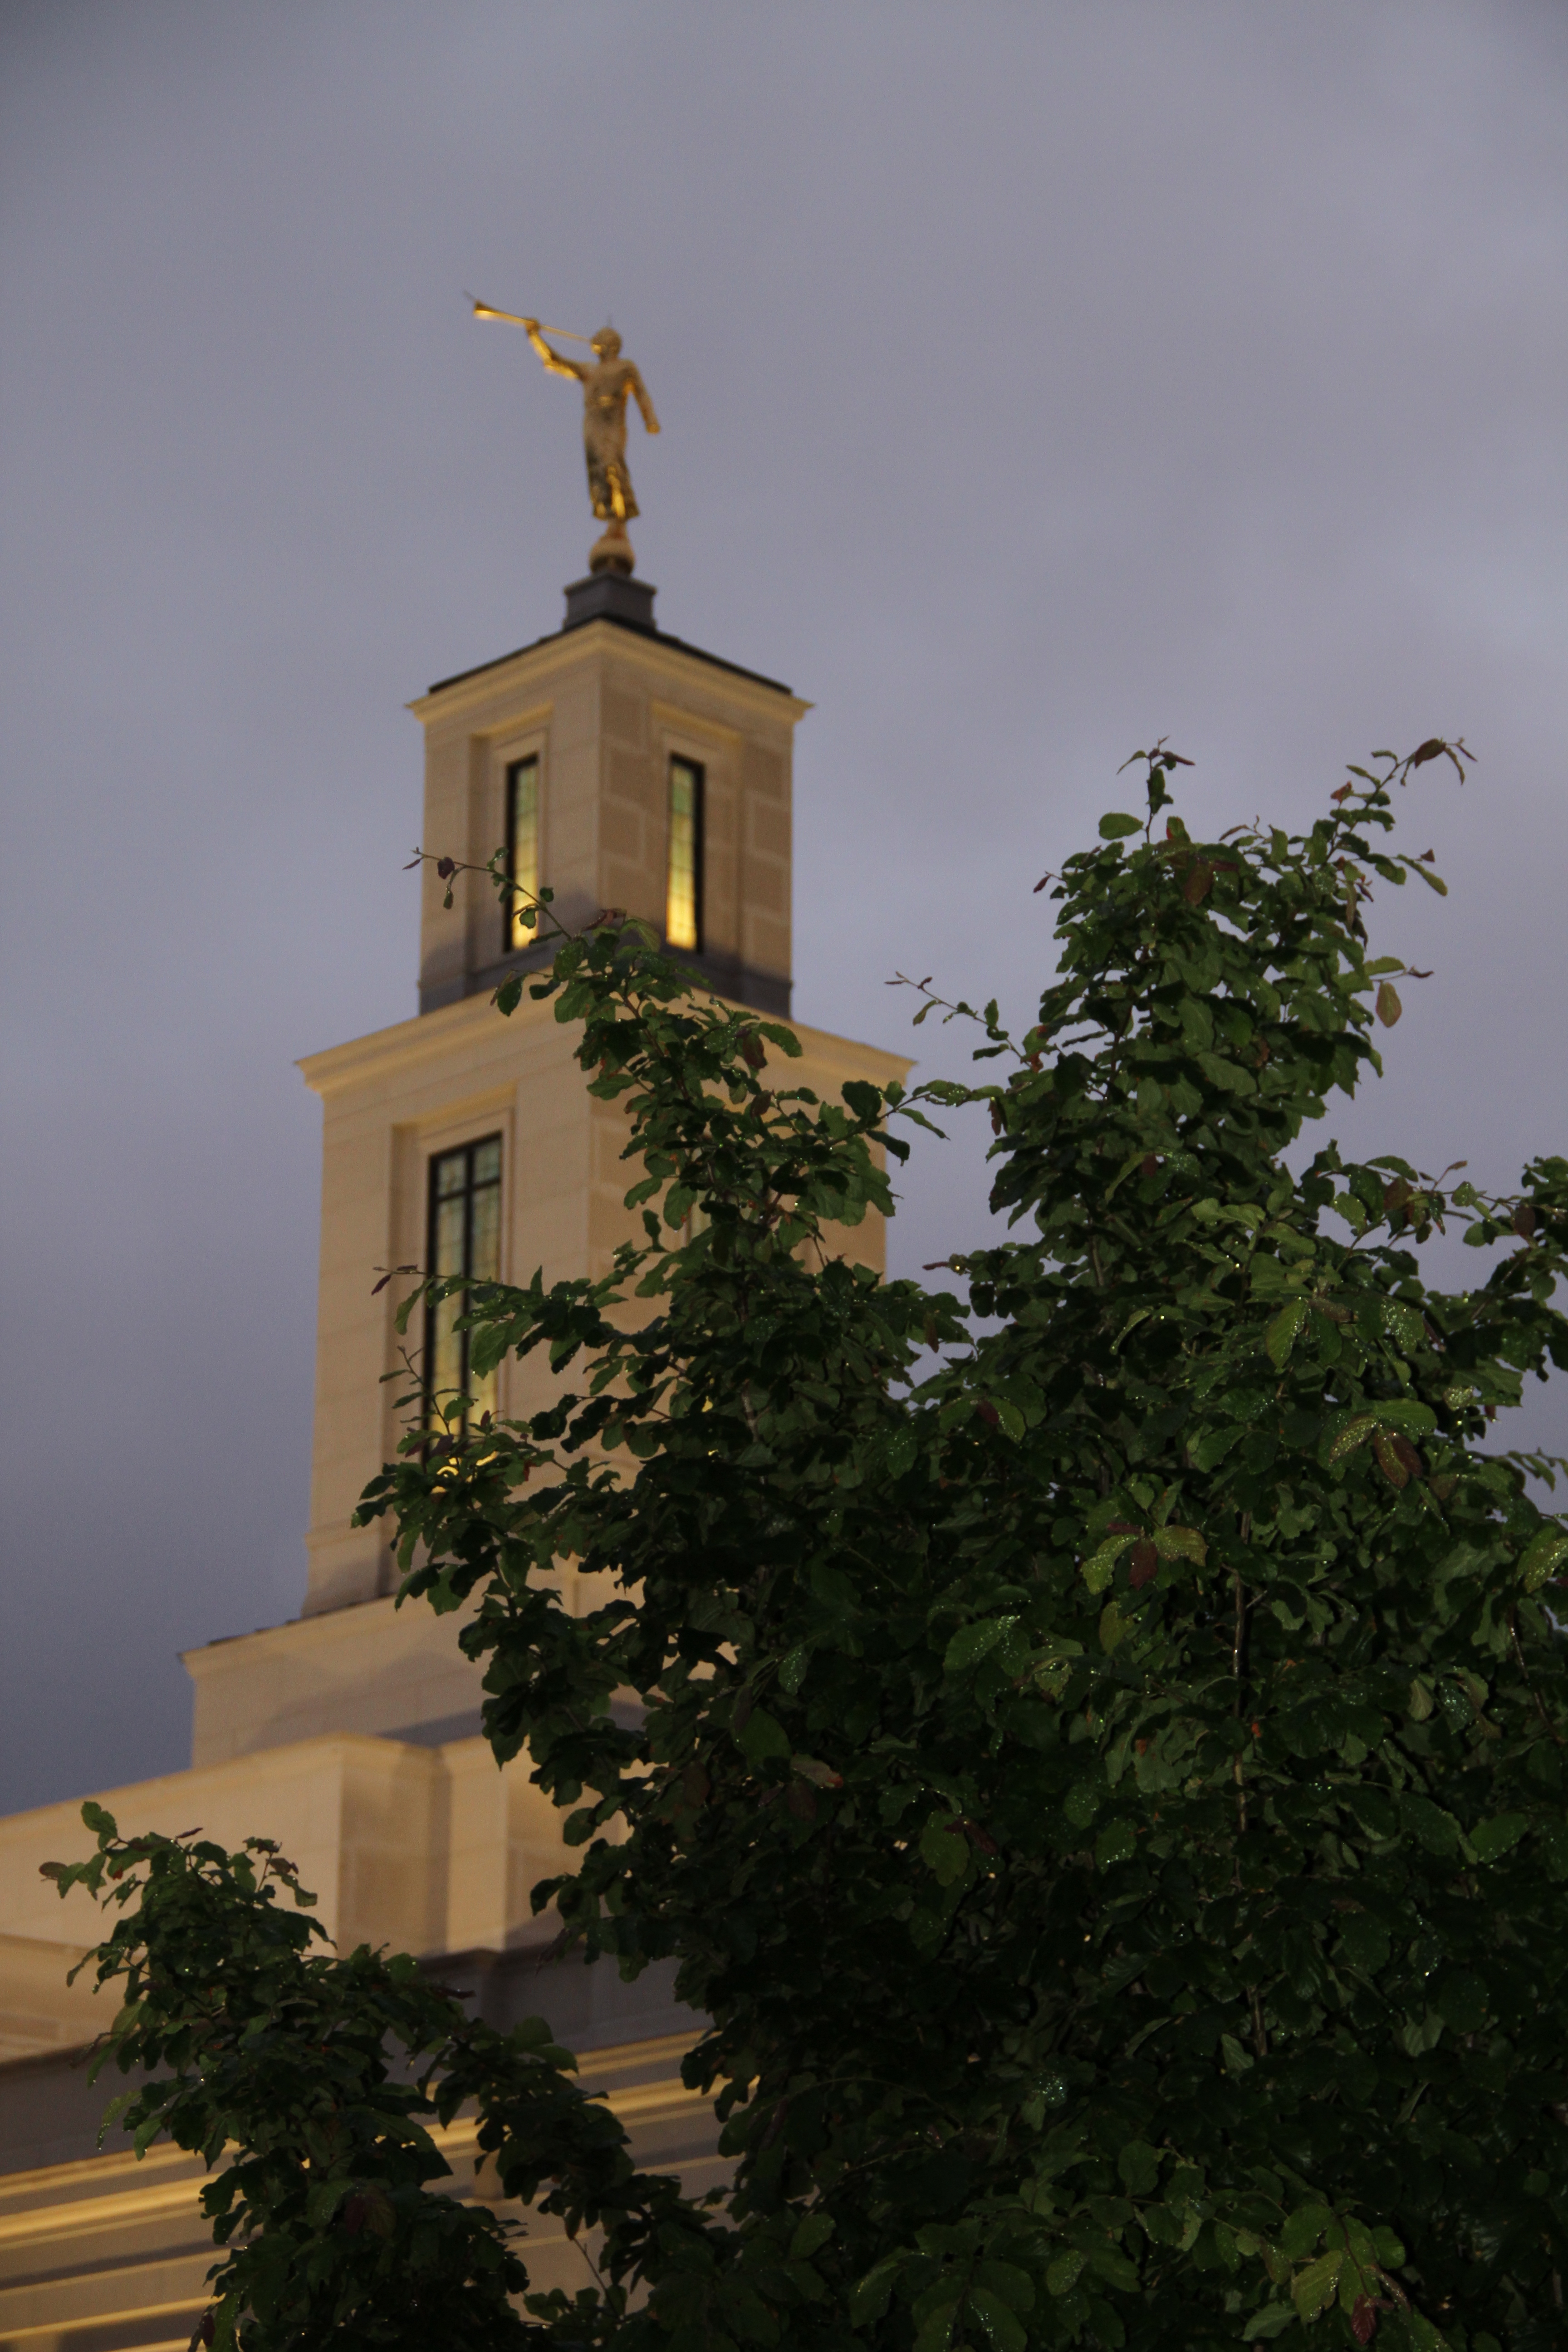 The tower of the Memphis Tennessee Temple under rainy skies on May 4, 2019. The tower was raised 10 feet during the 18-month renovation of the temple.